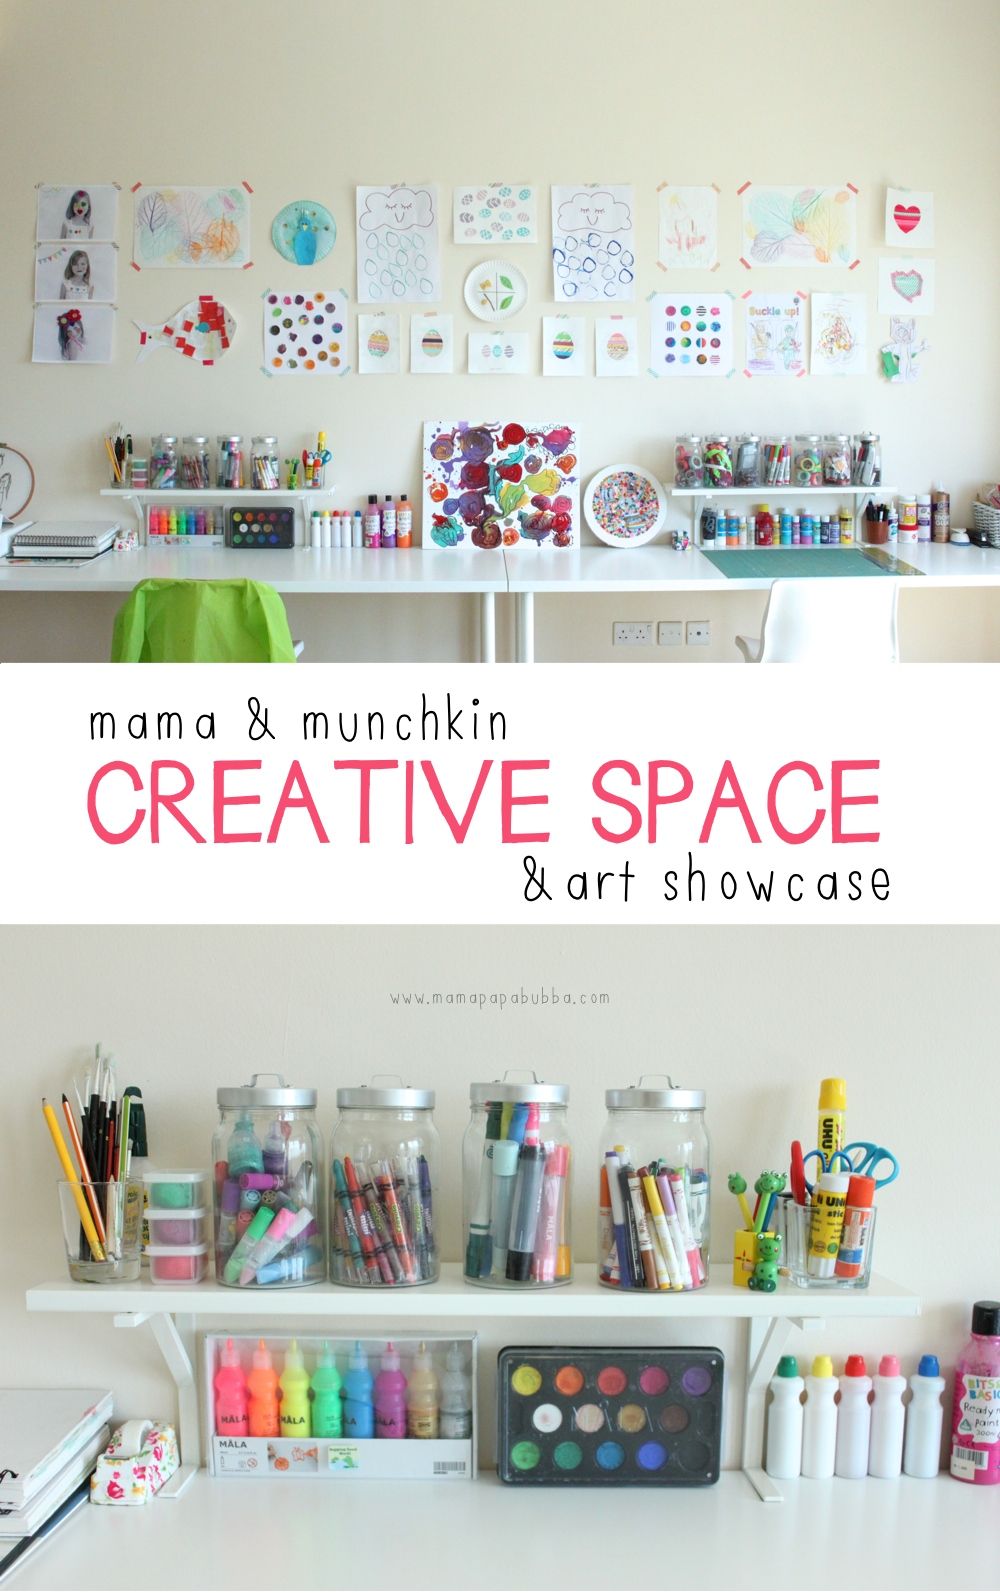 Mama & Munchkin Creative Space & Art Showcase | Mama.Papa.Bubba.